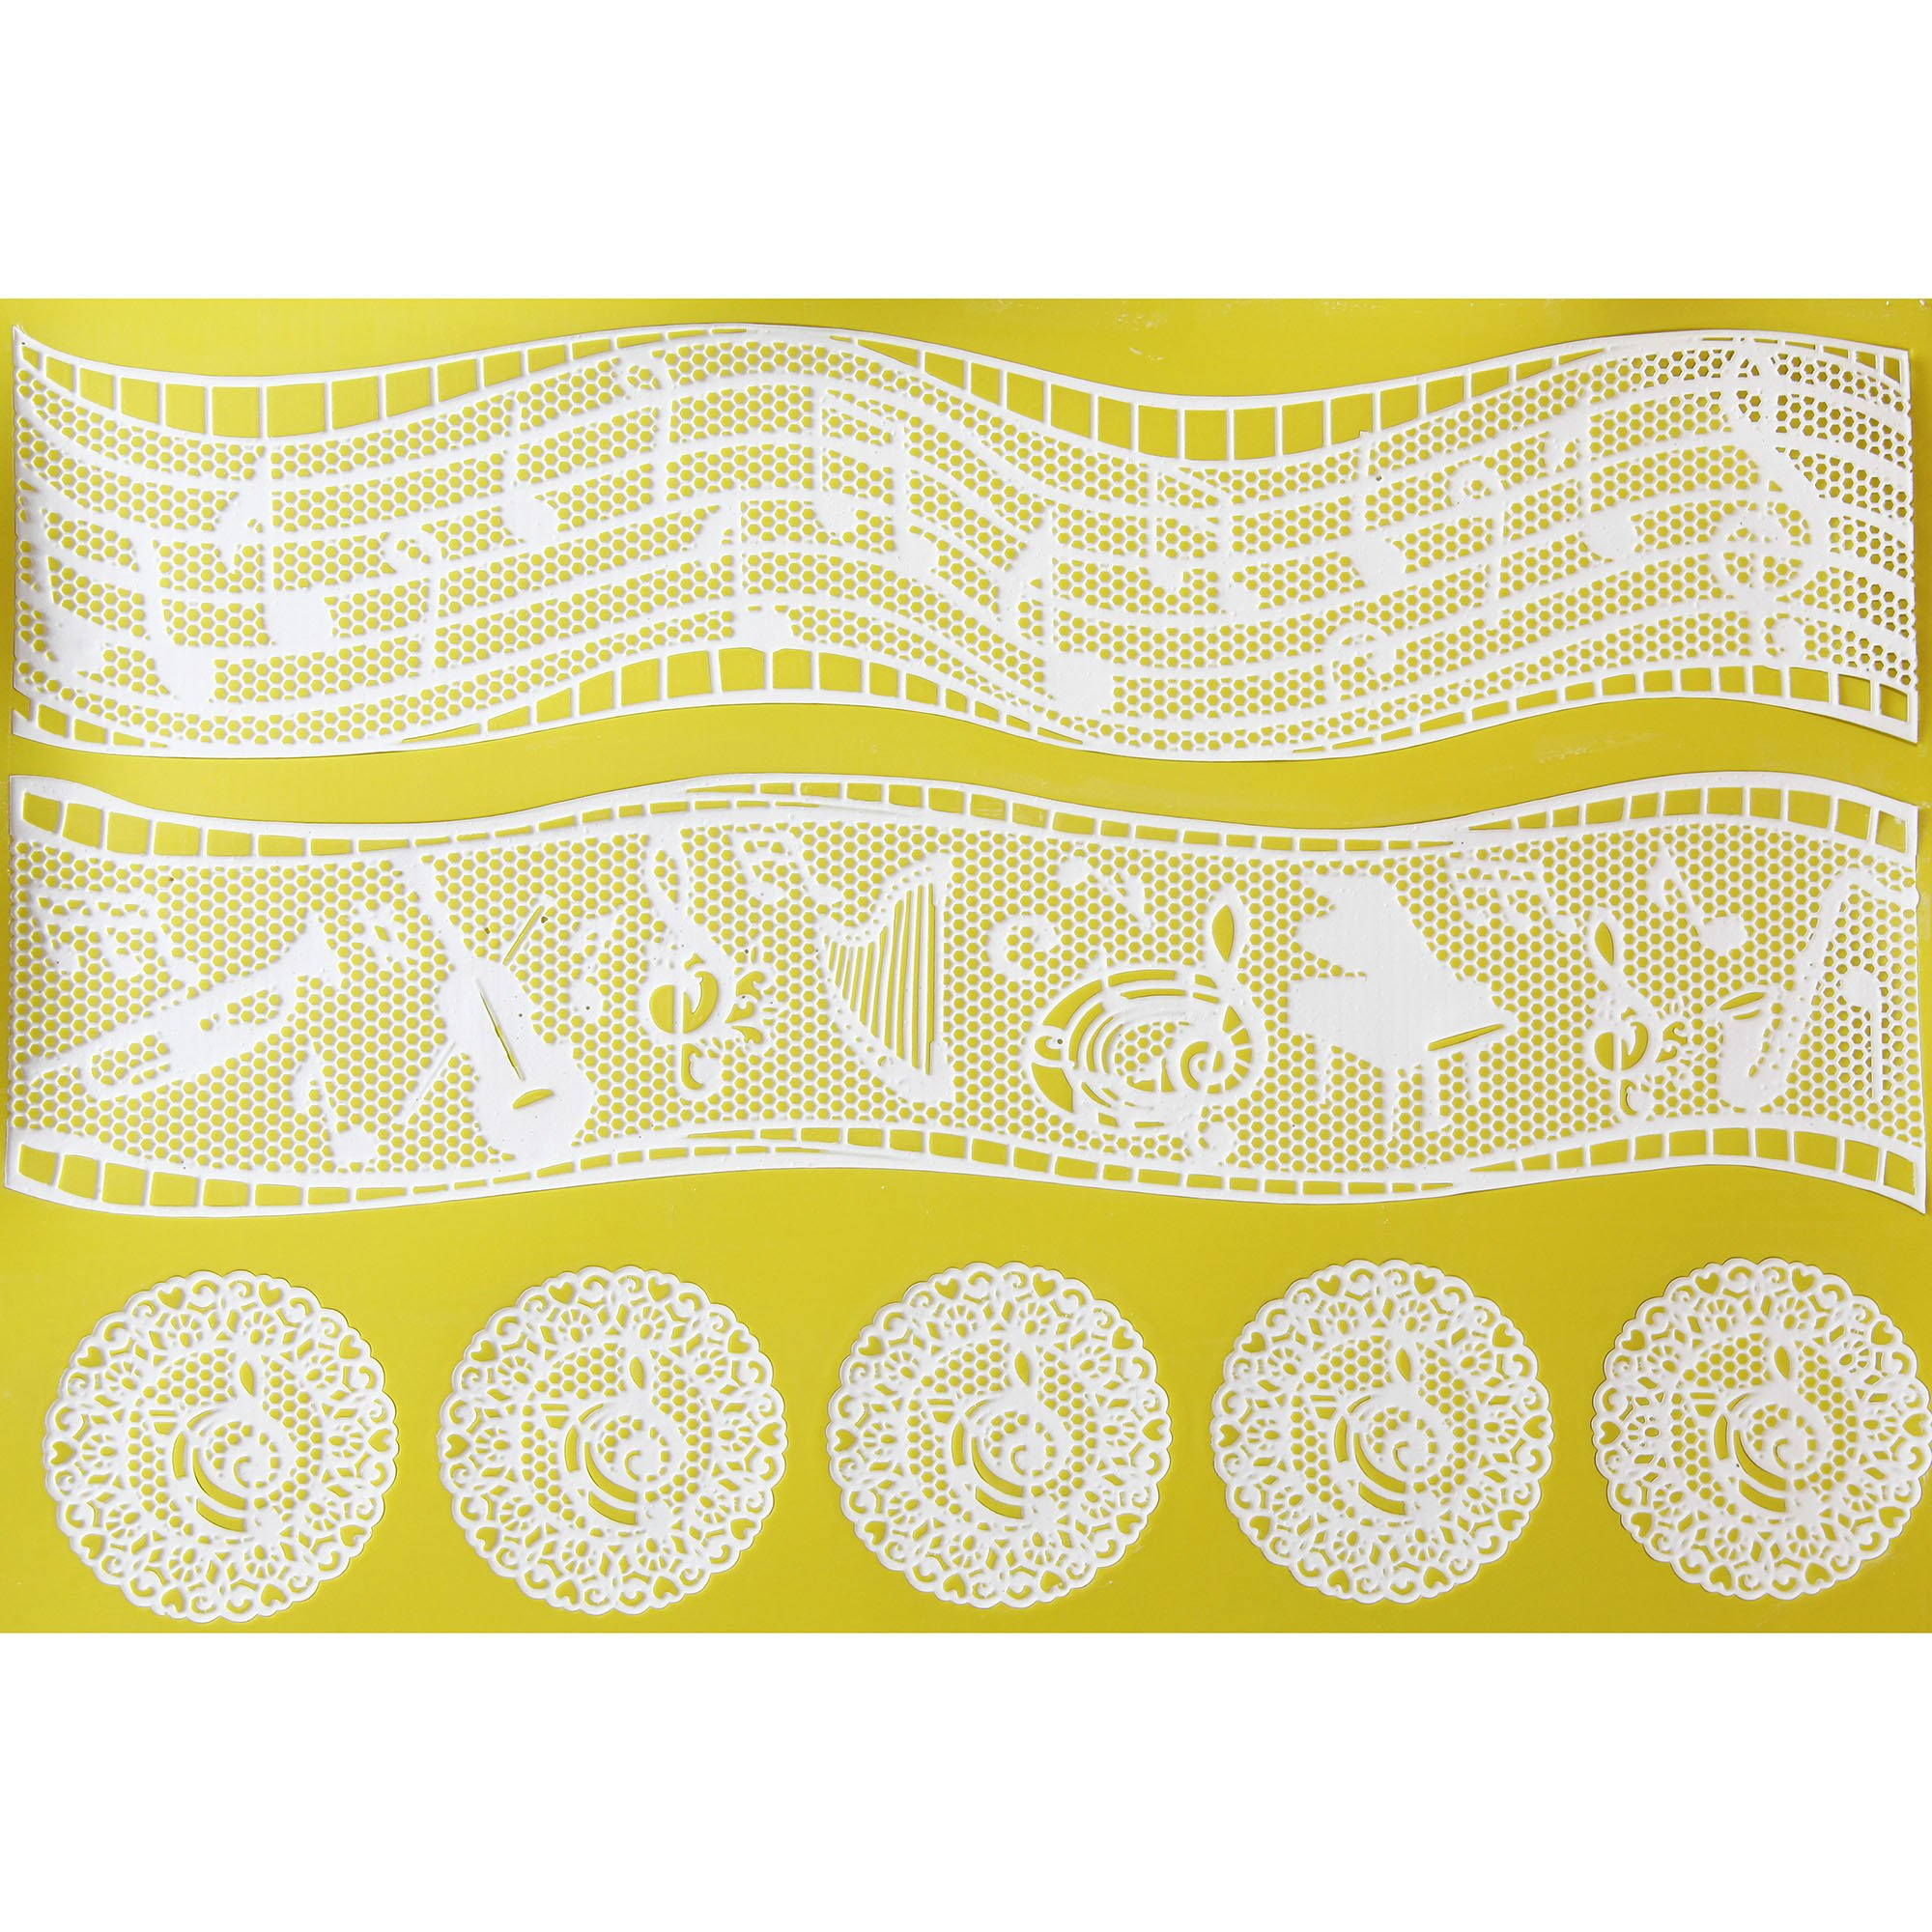 Music Themes Silicone Lace Mat by Chef Alan Tetreault